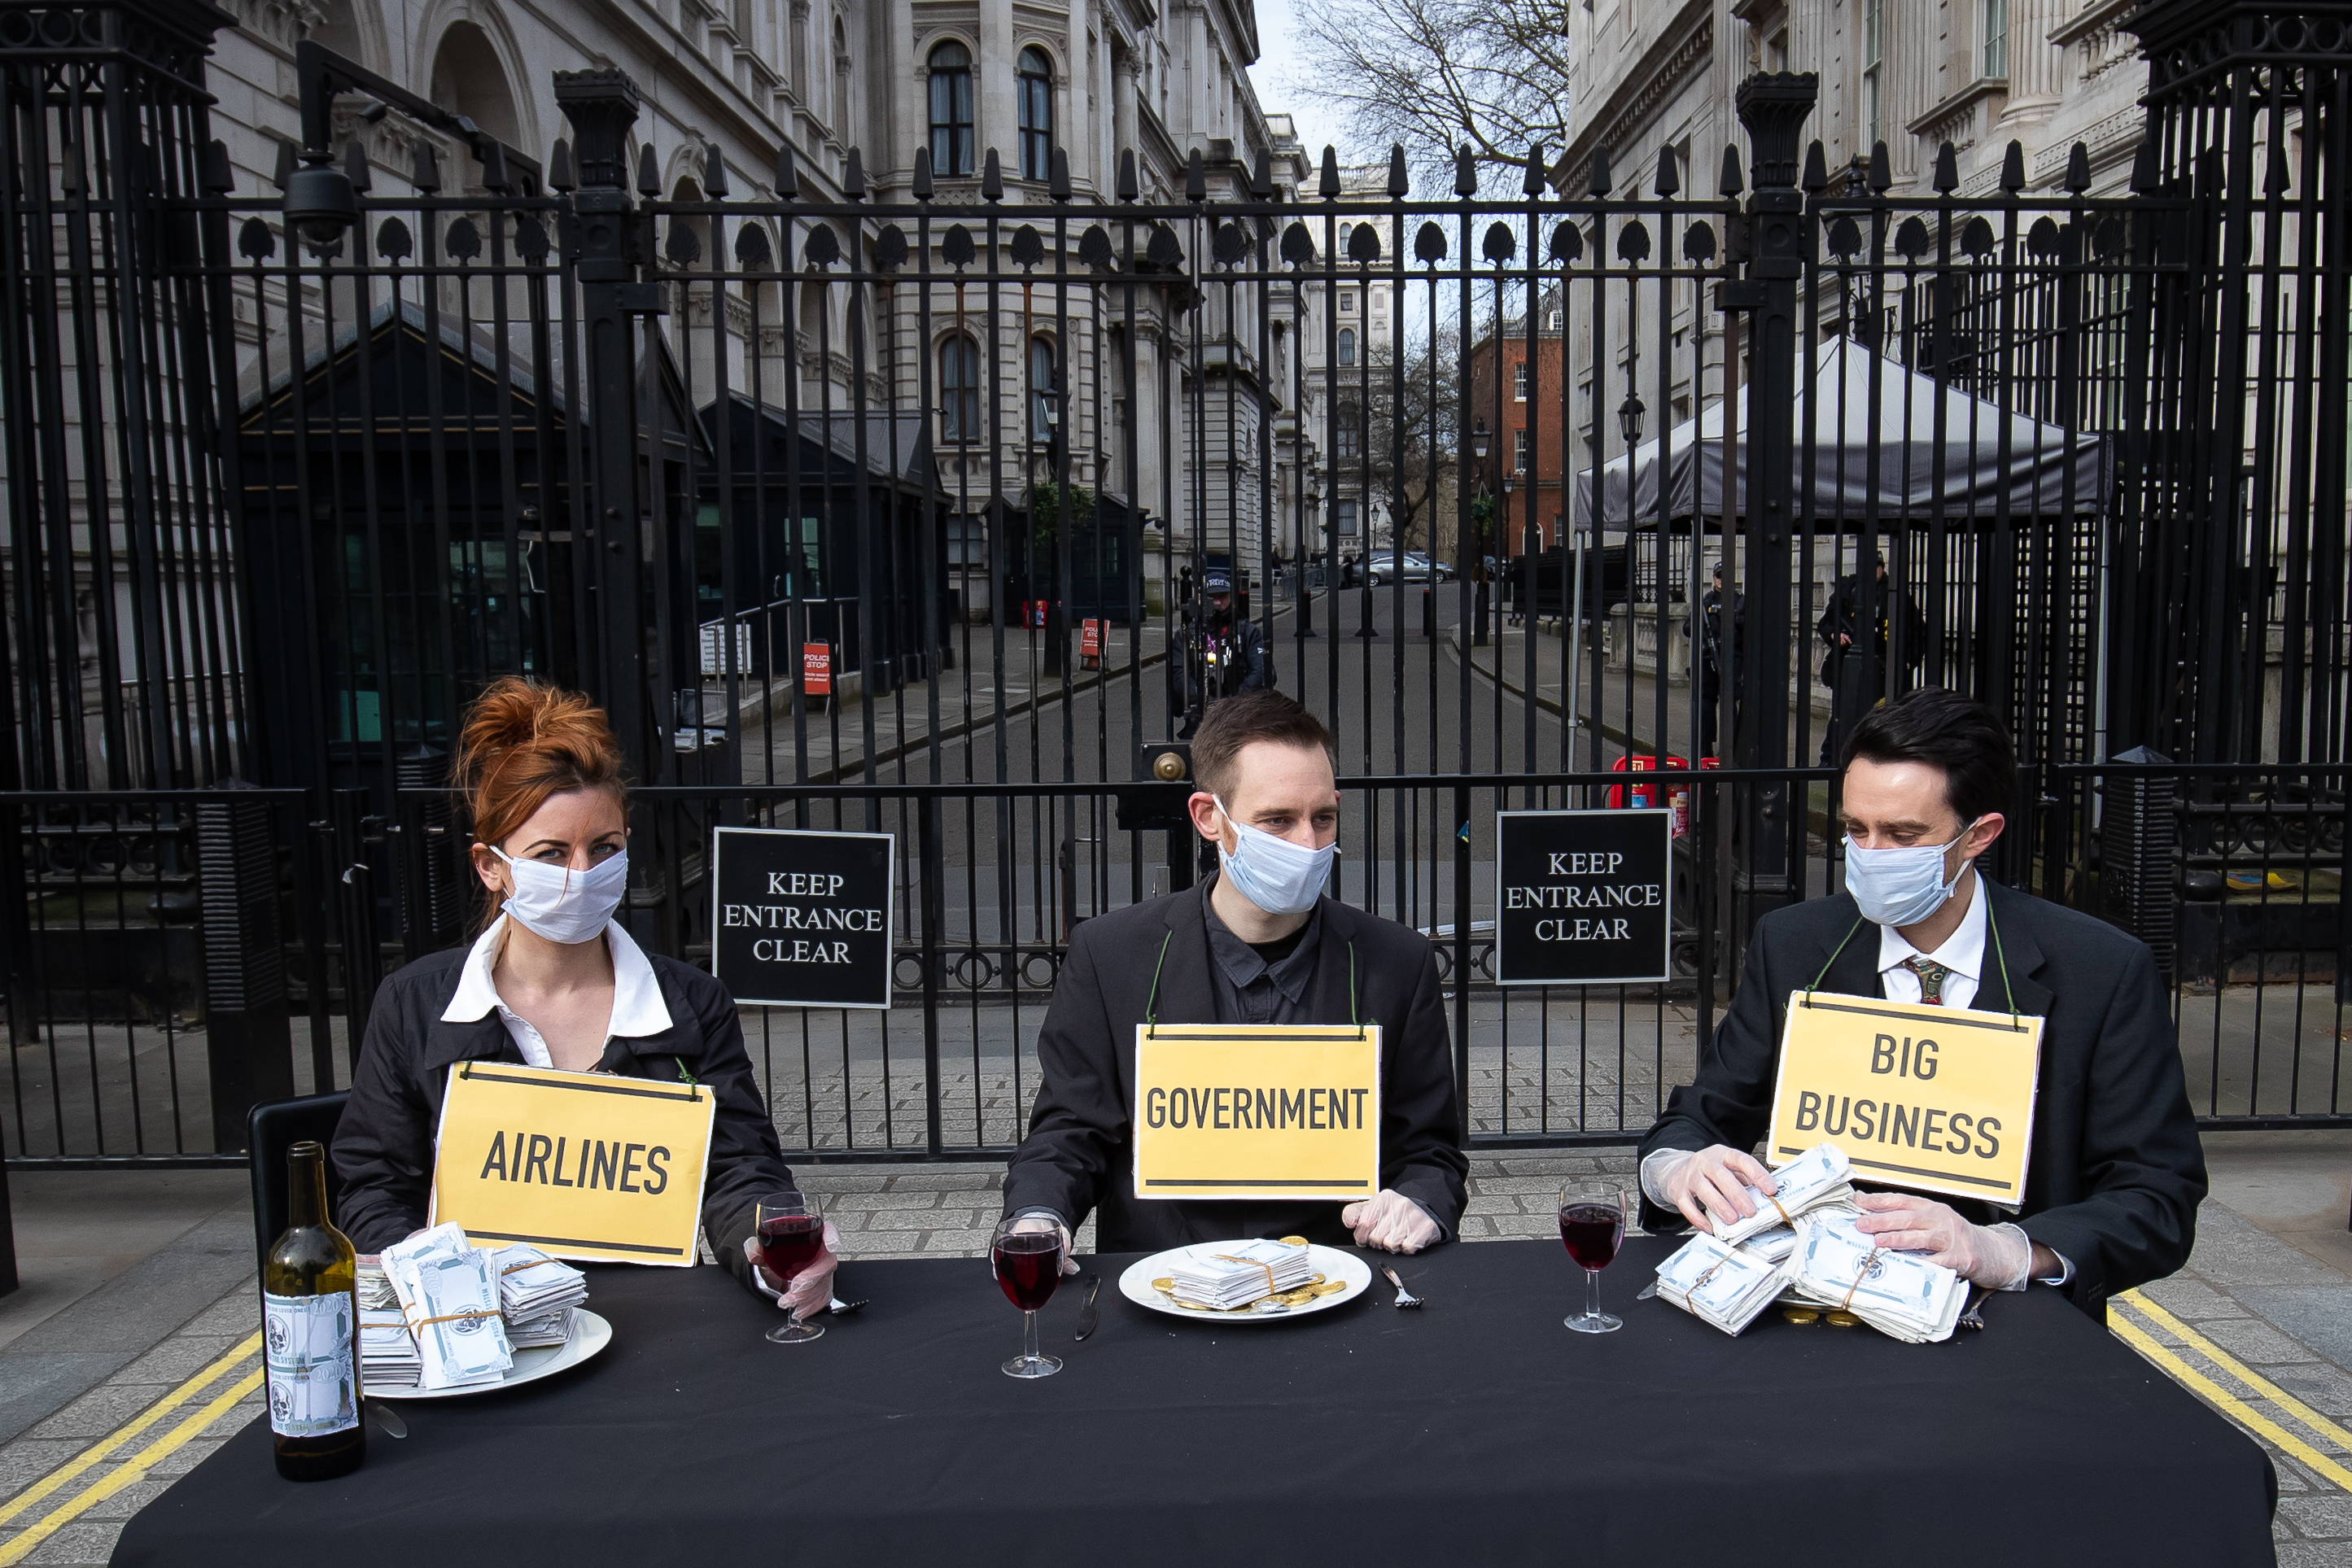 Protesters from a group called 'Pause the System' wear face masks as they demonstrate outside Downing Street in London. The group are calling for greater action from the government as the UK's coronavirus death toll reached 144 as of 1pm on Thursday, with around four in 10 of all deaths so far in London.